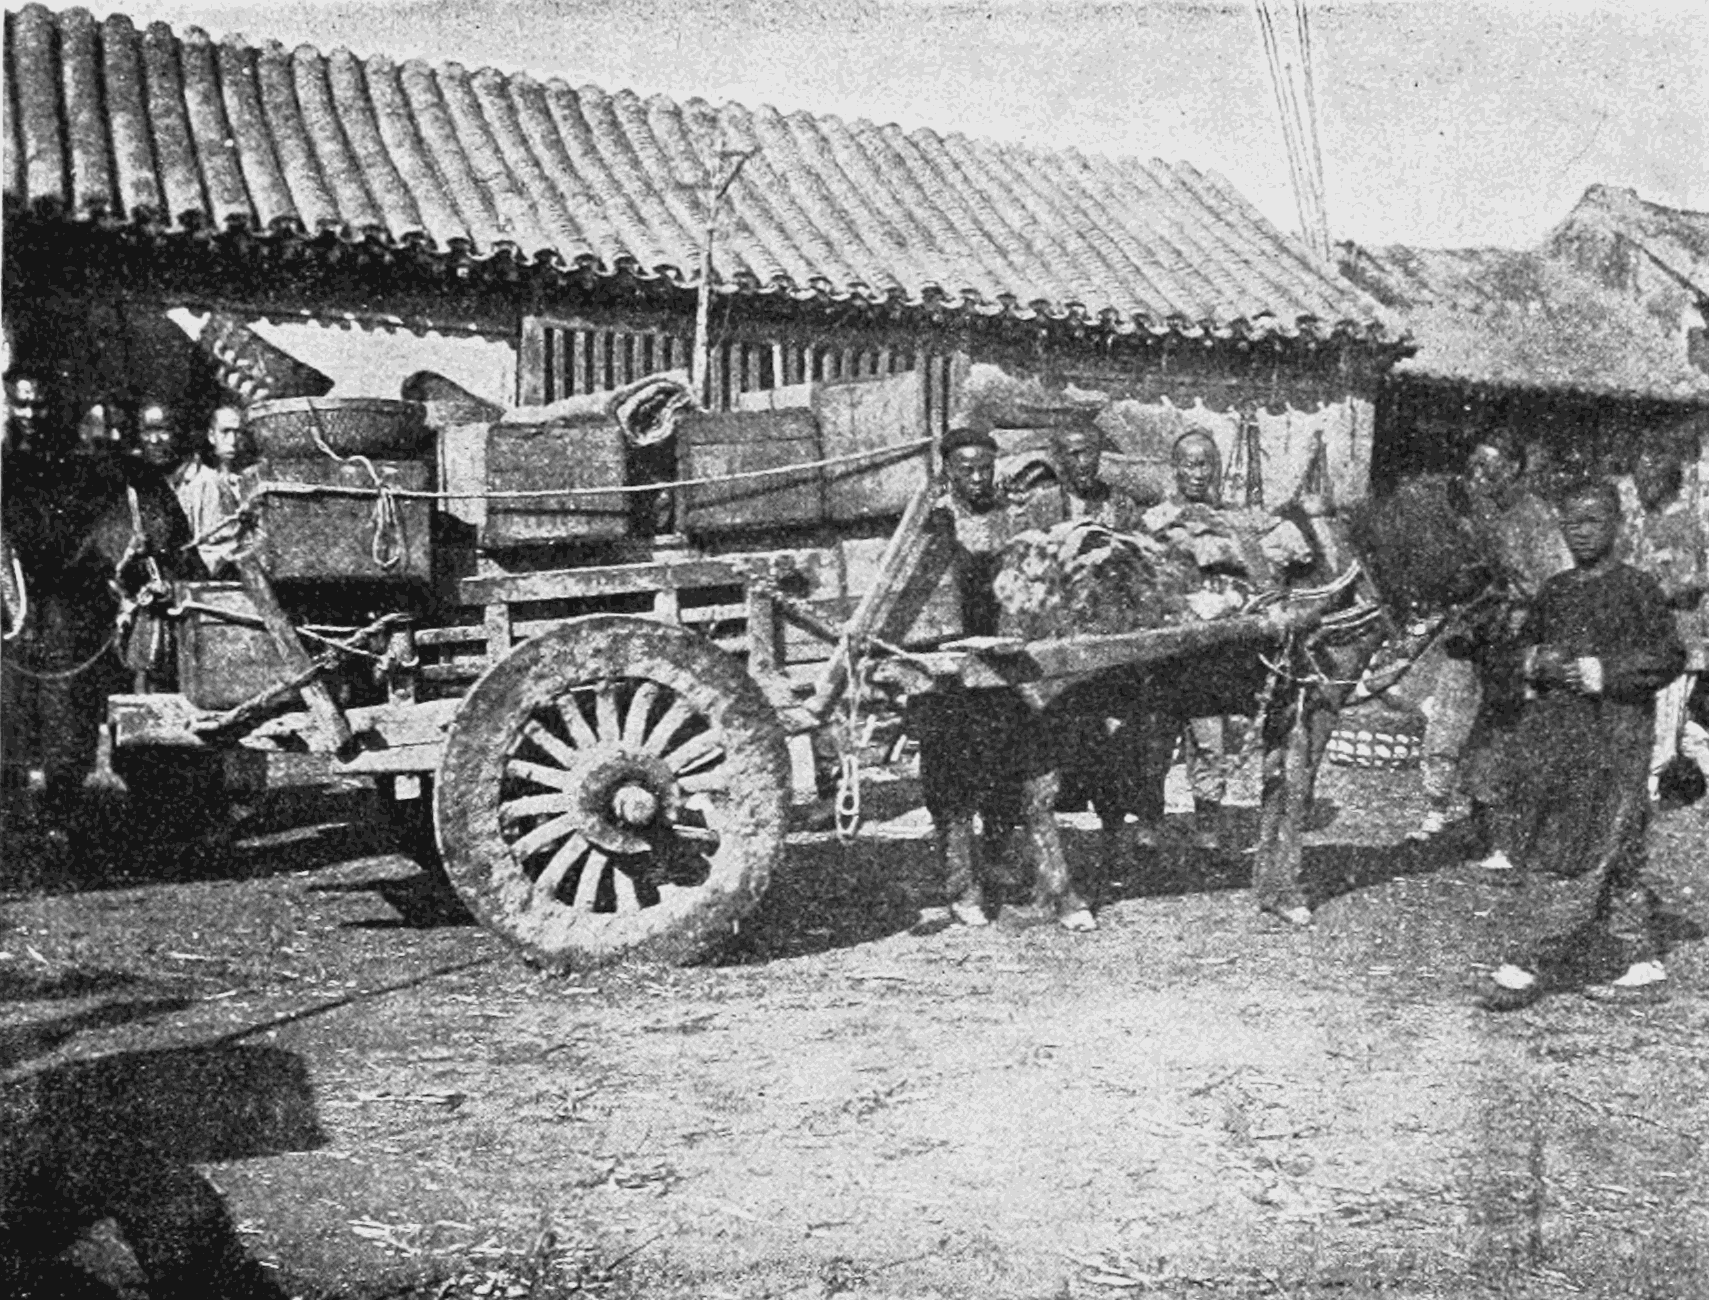 PSM V65 D315 Fruit cart from the hill country in pekin china.png